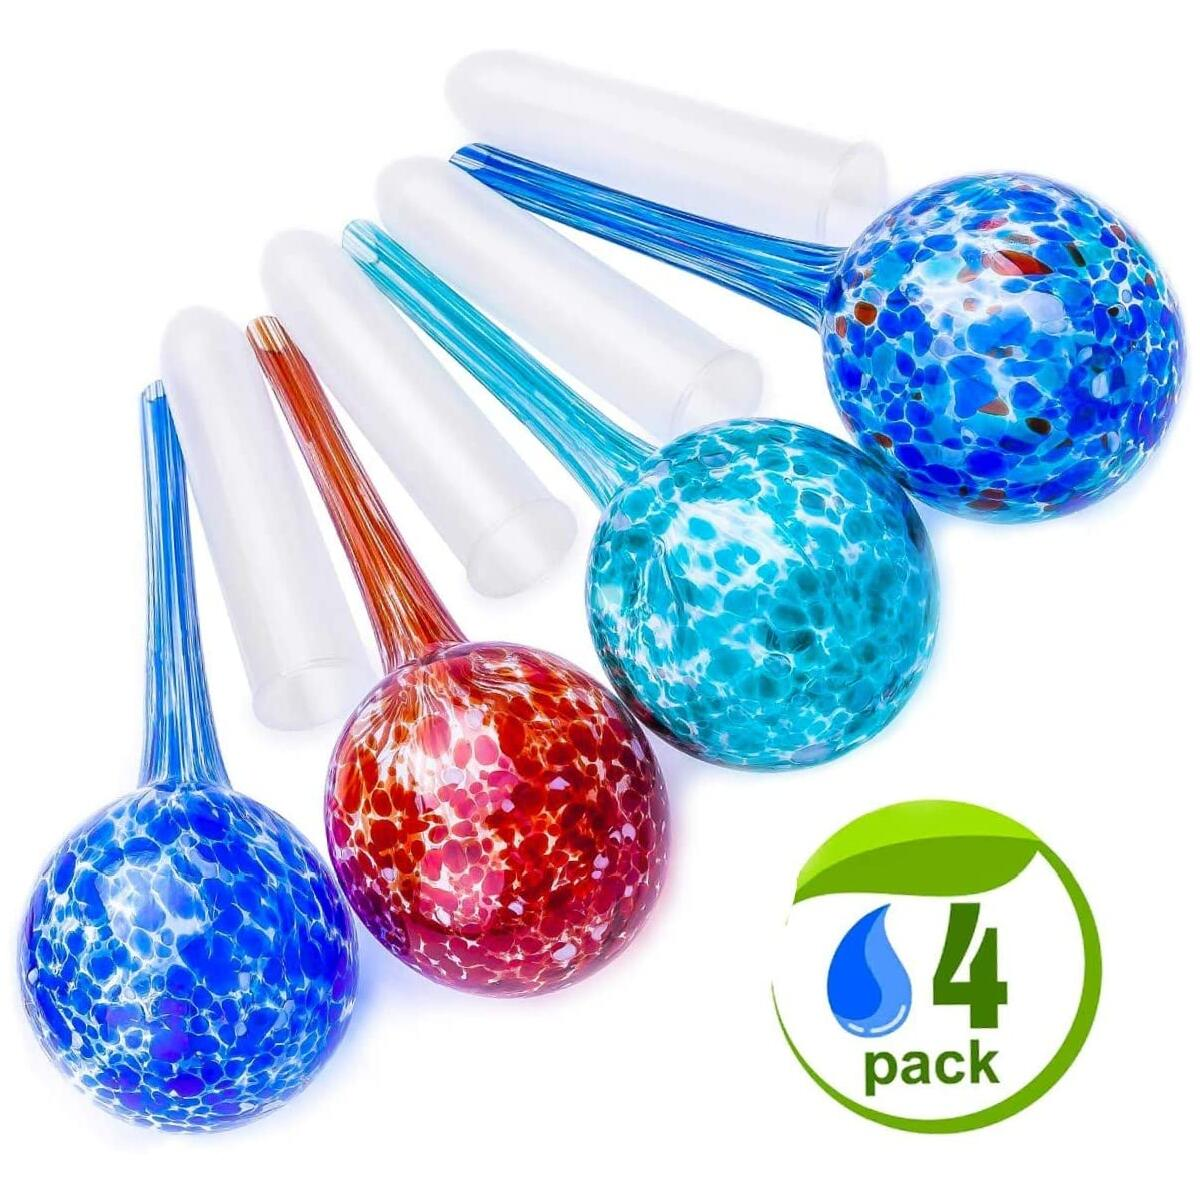 Medium Size Self Watering Spikes for Plants. (4 Pack) Improved Adjustable Indoor Outdoor Decorative Garden Irrigation System Aqua Glass Globes Bulbs Stakes + Plastic Tubes for No More Mess.